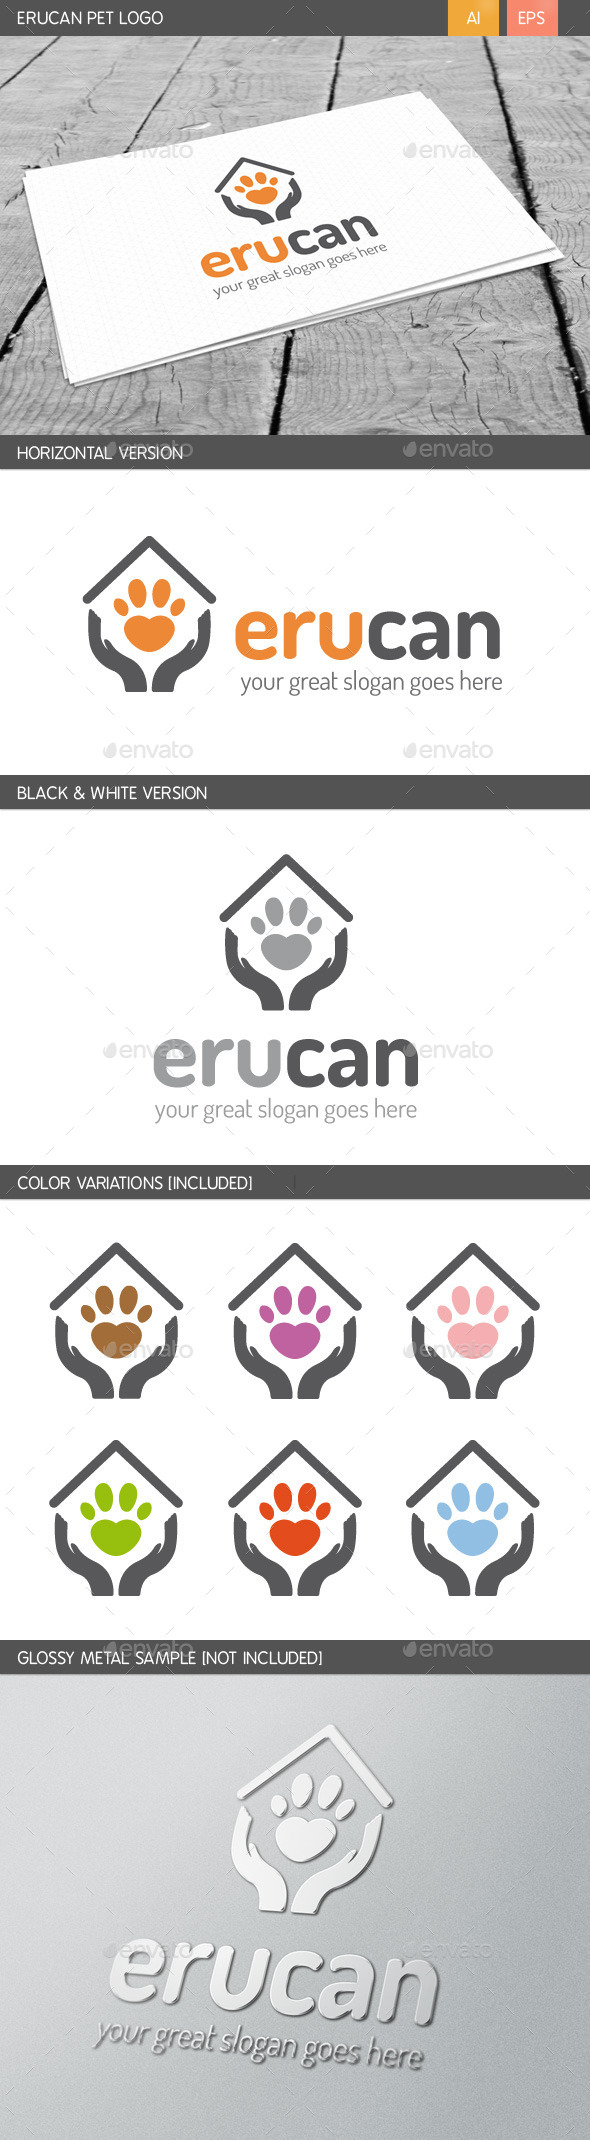 Erucan Pet Logo - Animals Logo Templates